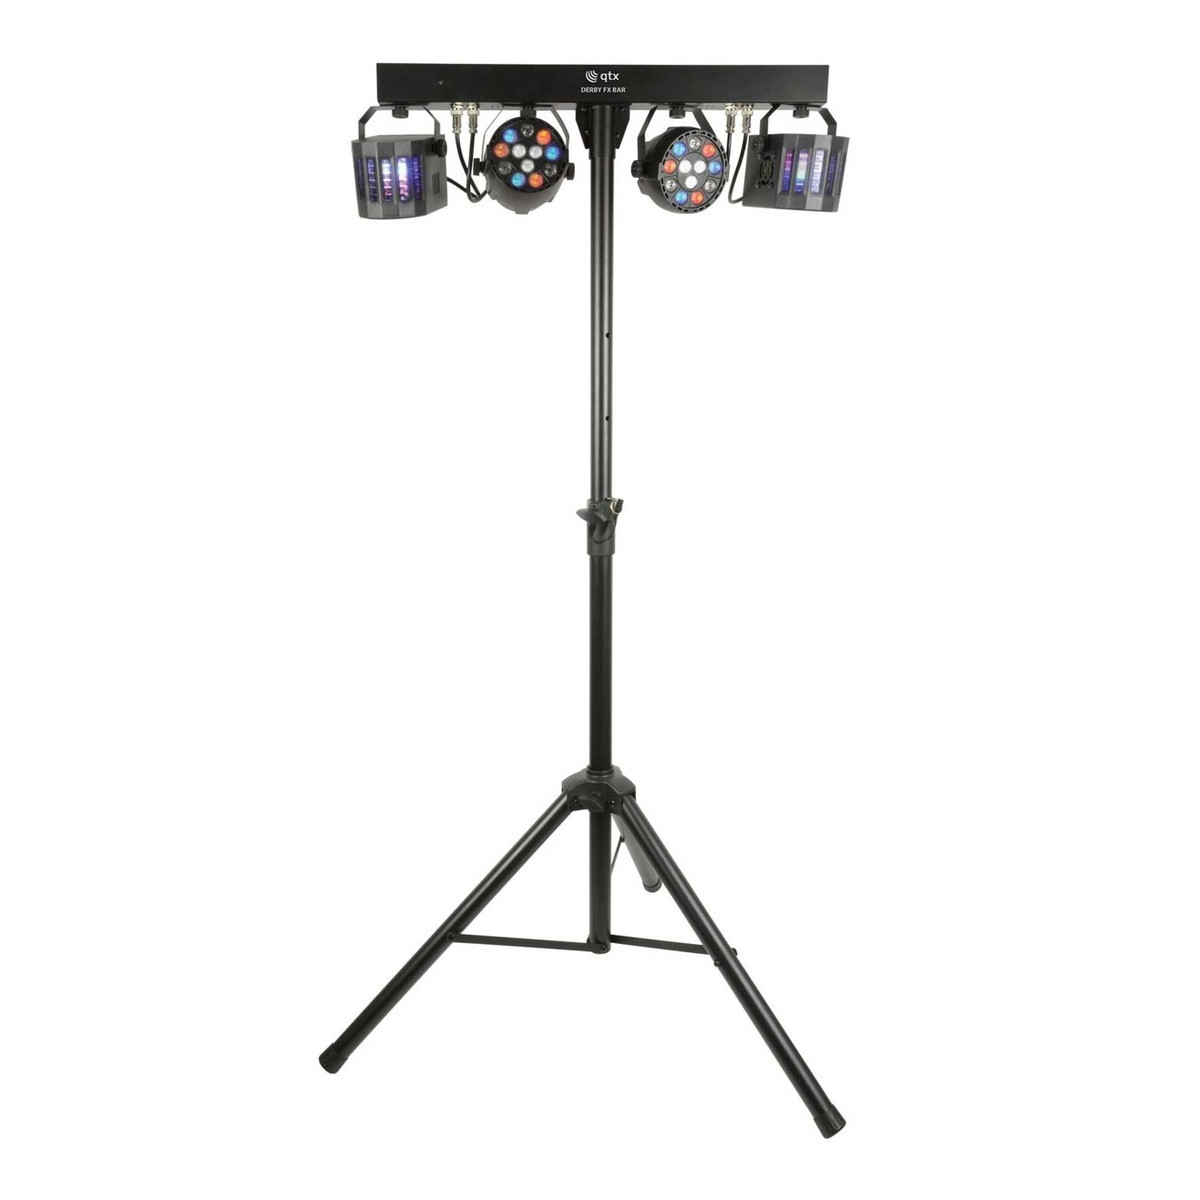 QTX LED Derby FX Bar with Lighting Stand at Gear4music